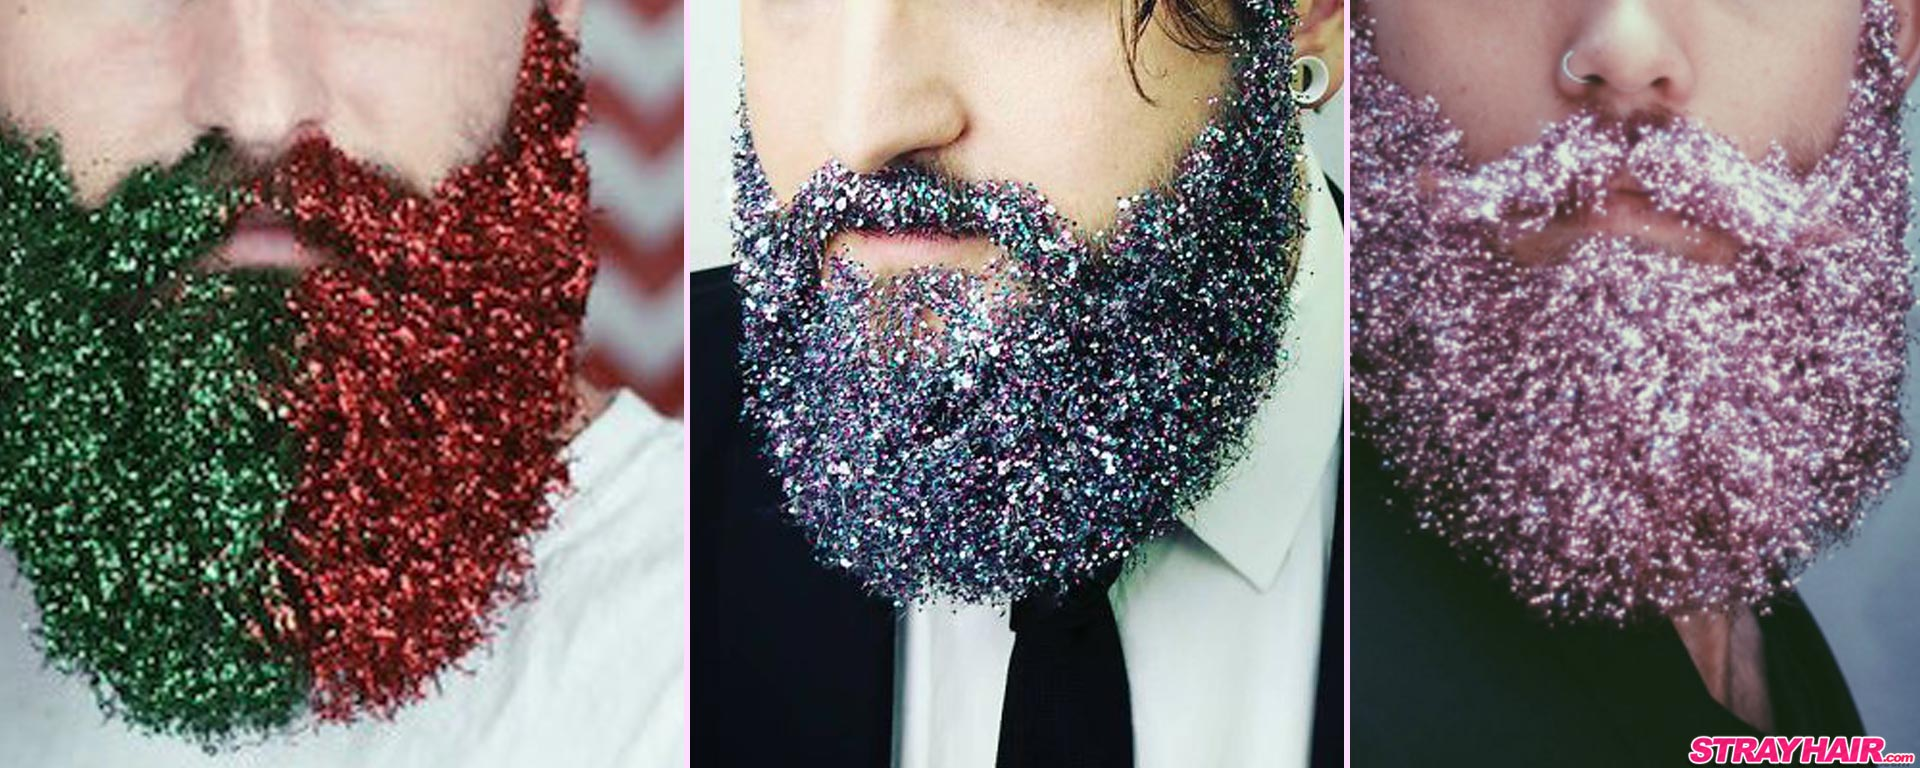 fabulous glitter sparkles beards